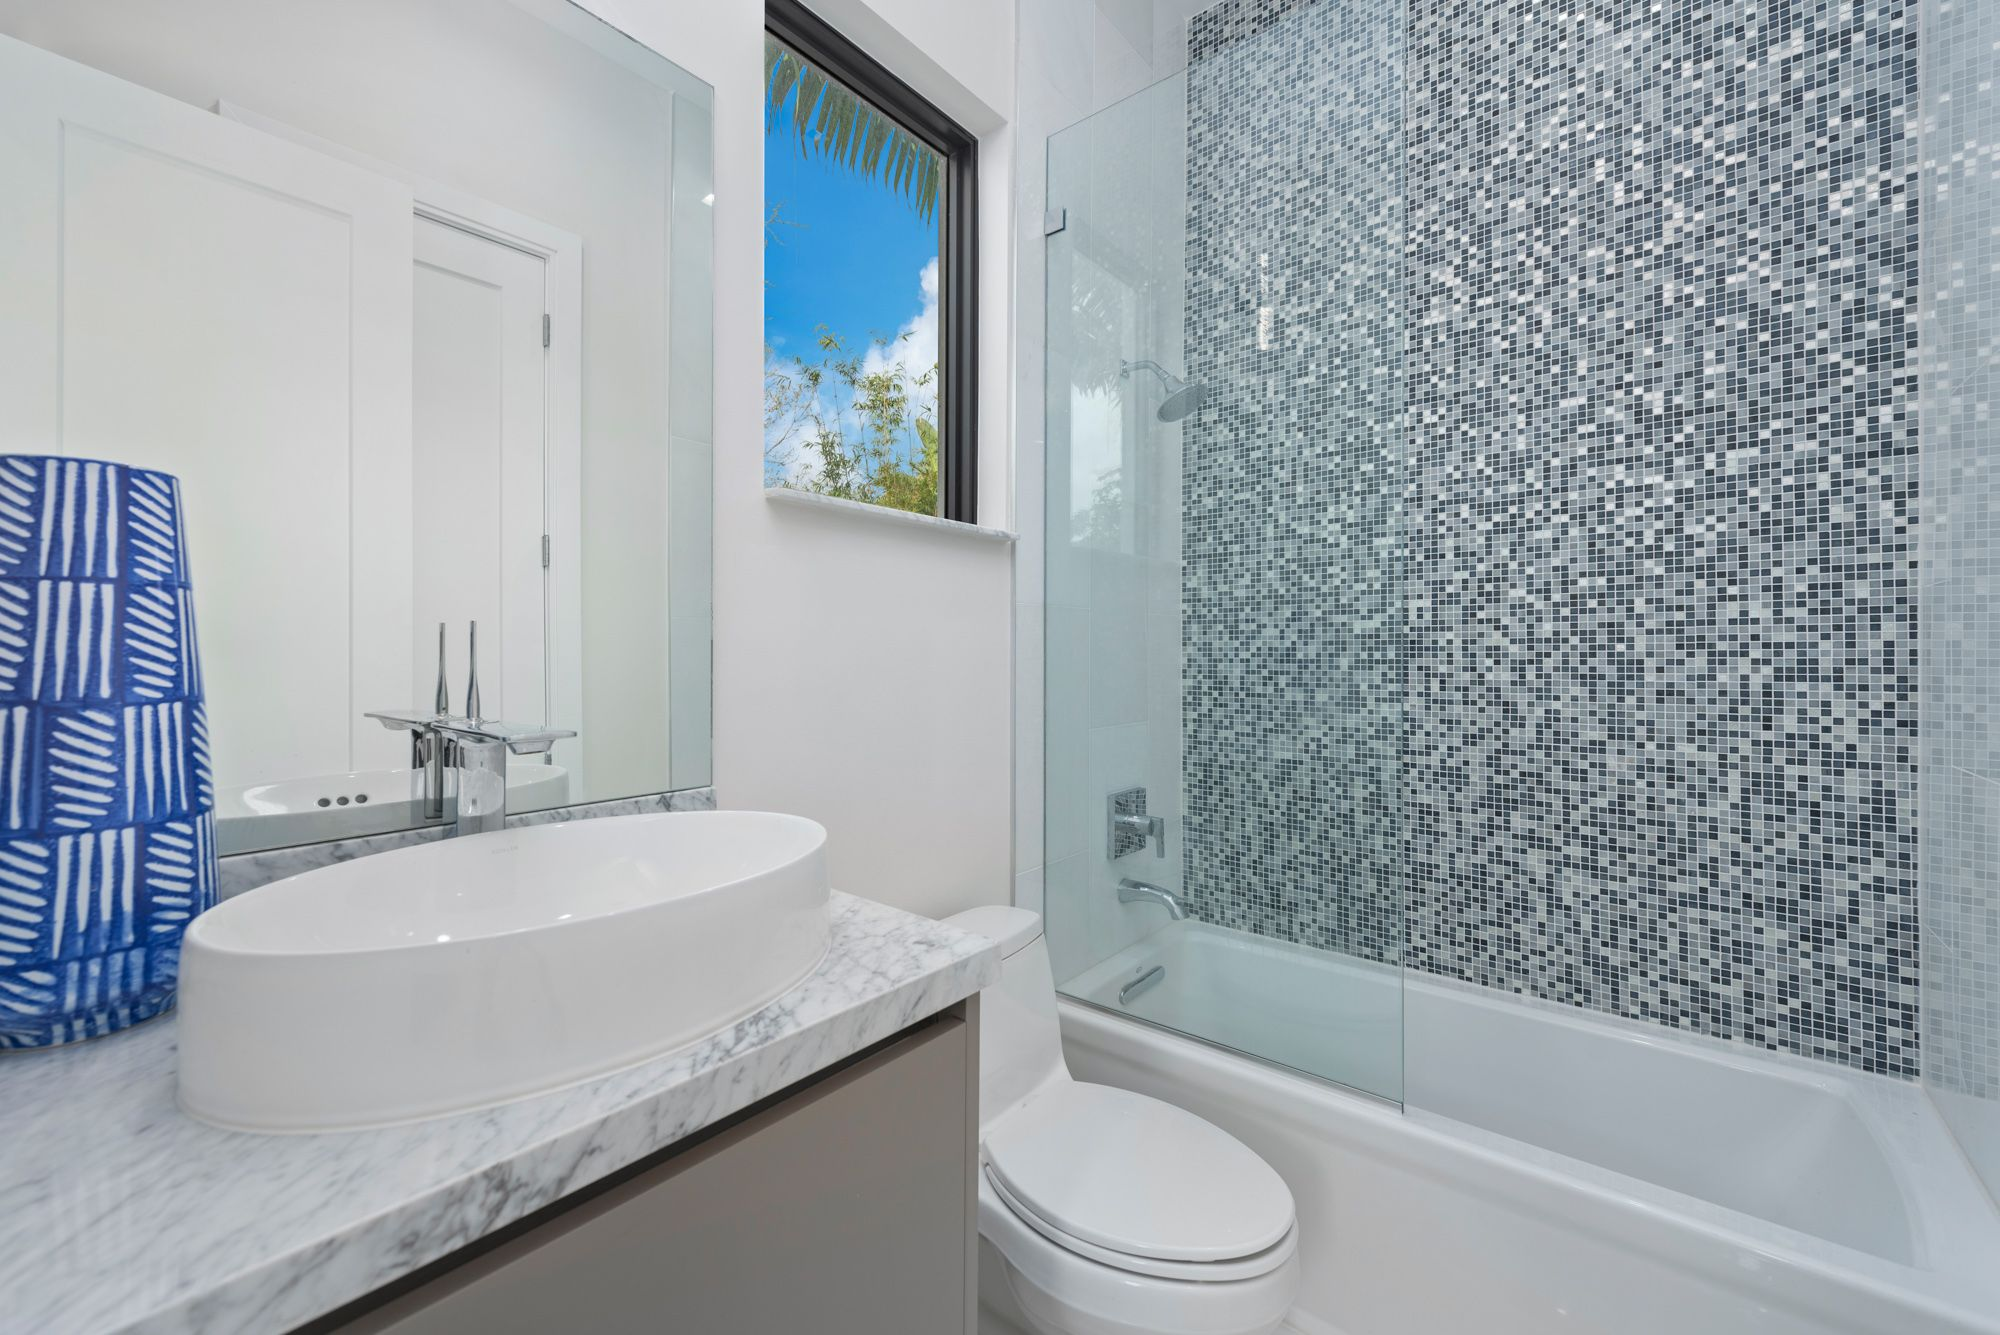 Bathroom featured in the Capri C Three Story By CC Homes in Miami-Dade County, FL